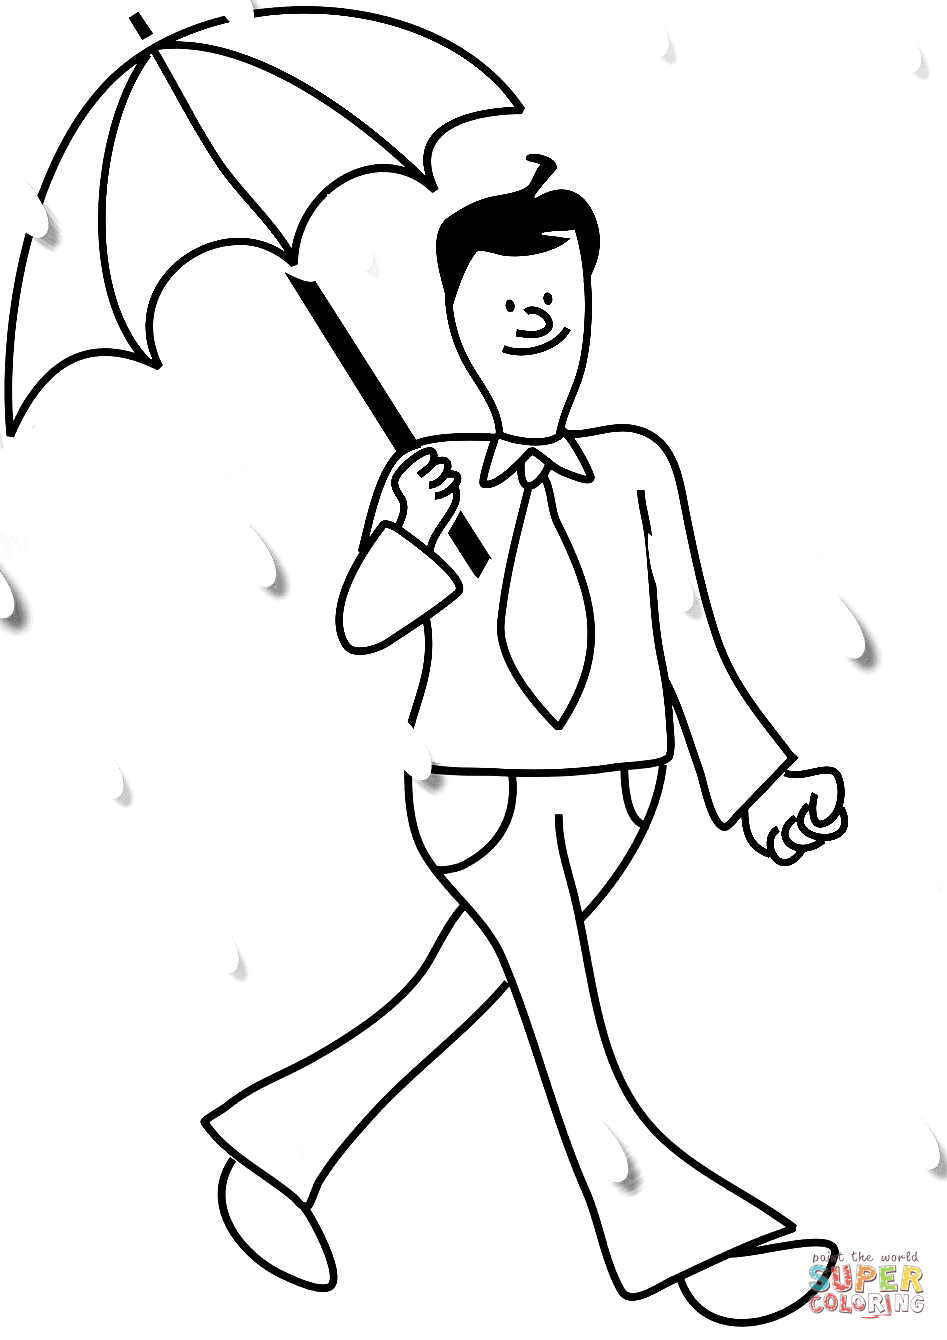 Man With Umbrella In Rain Coloring Page Free Printable Coloring